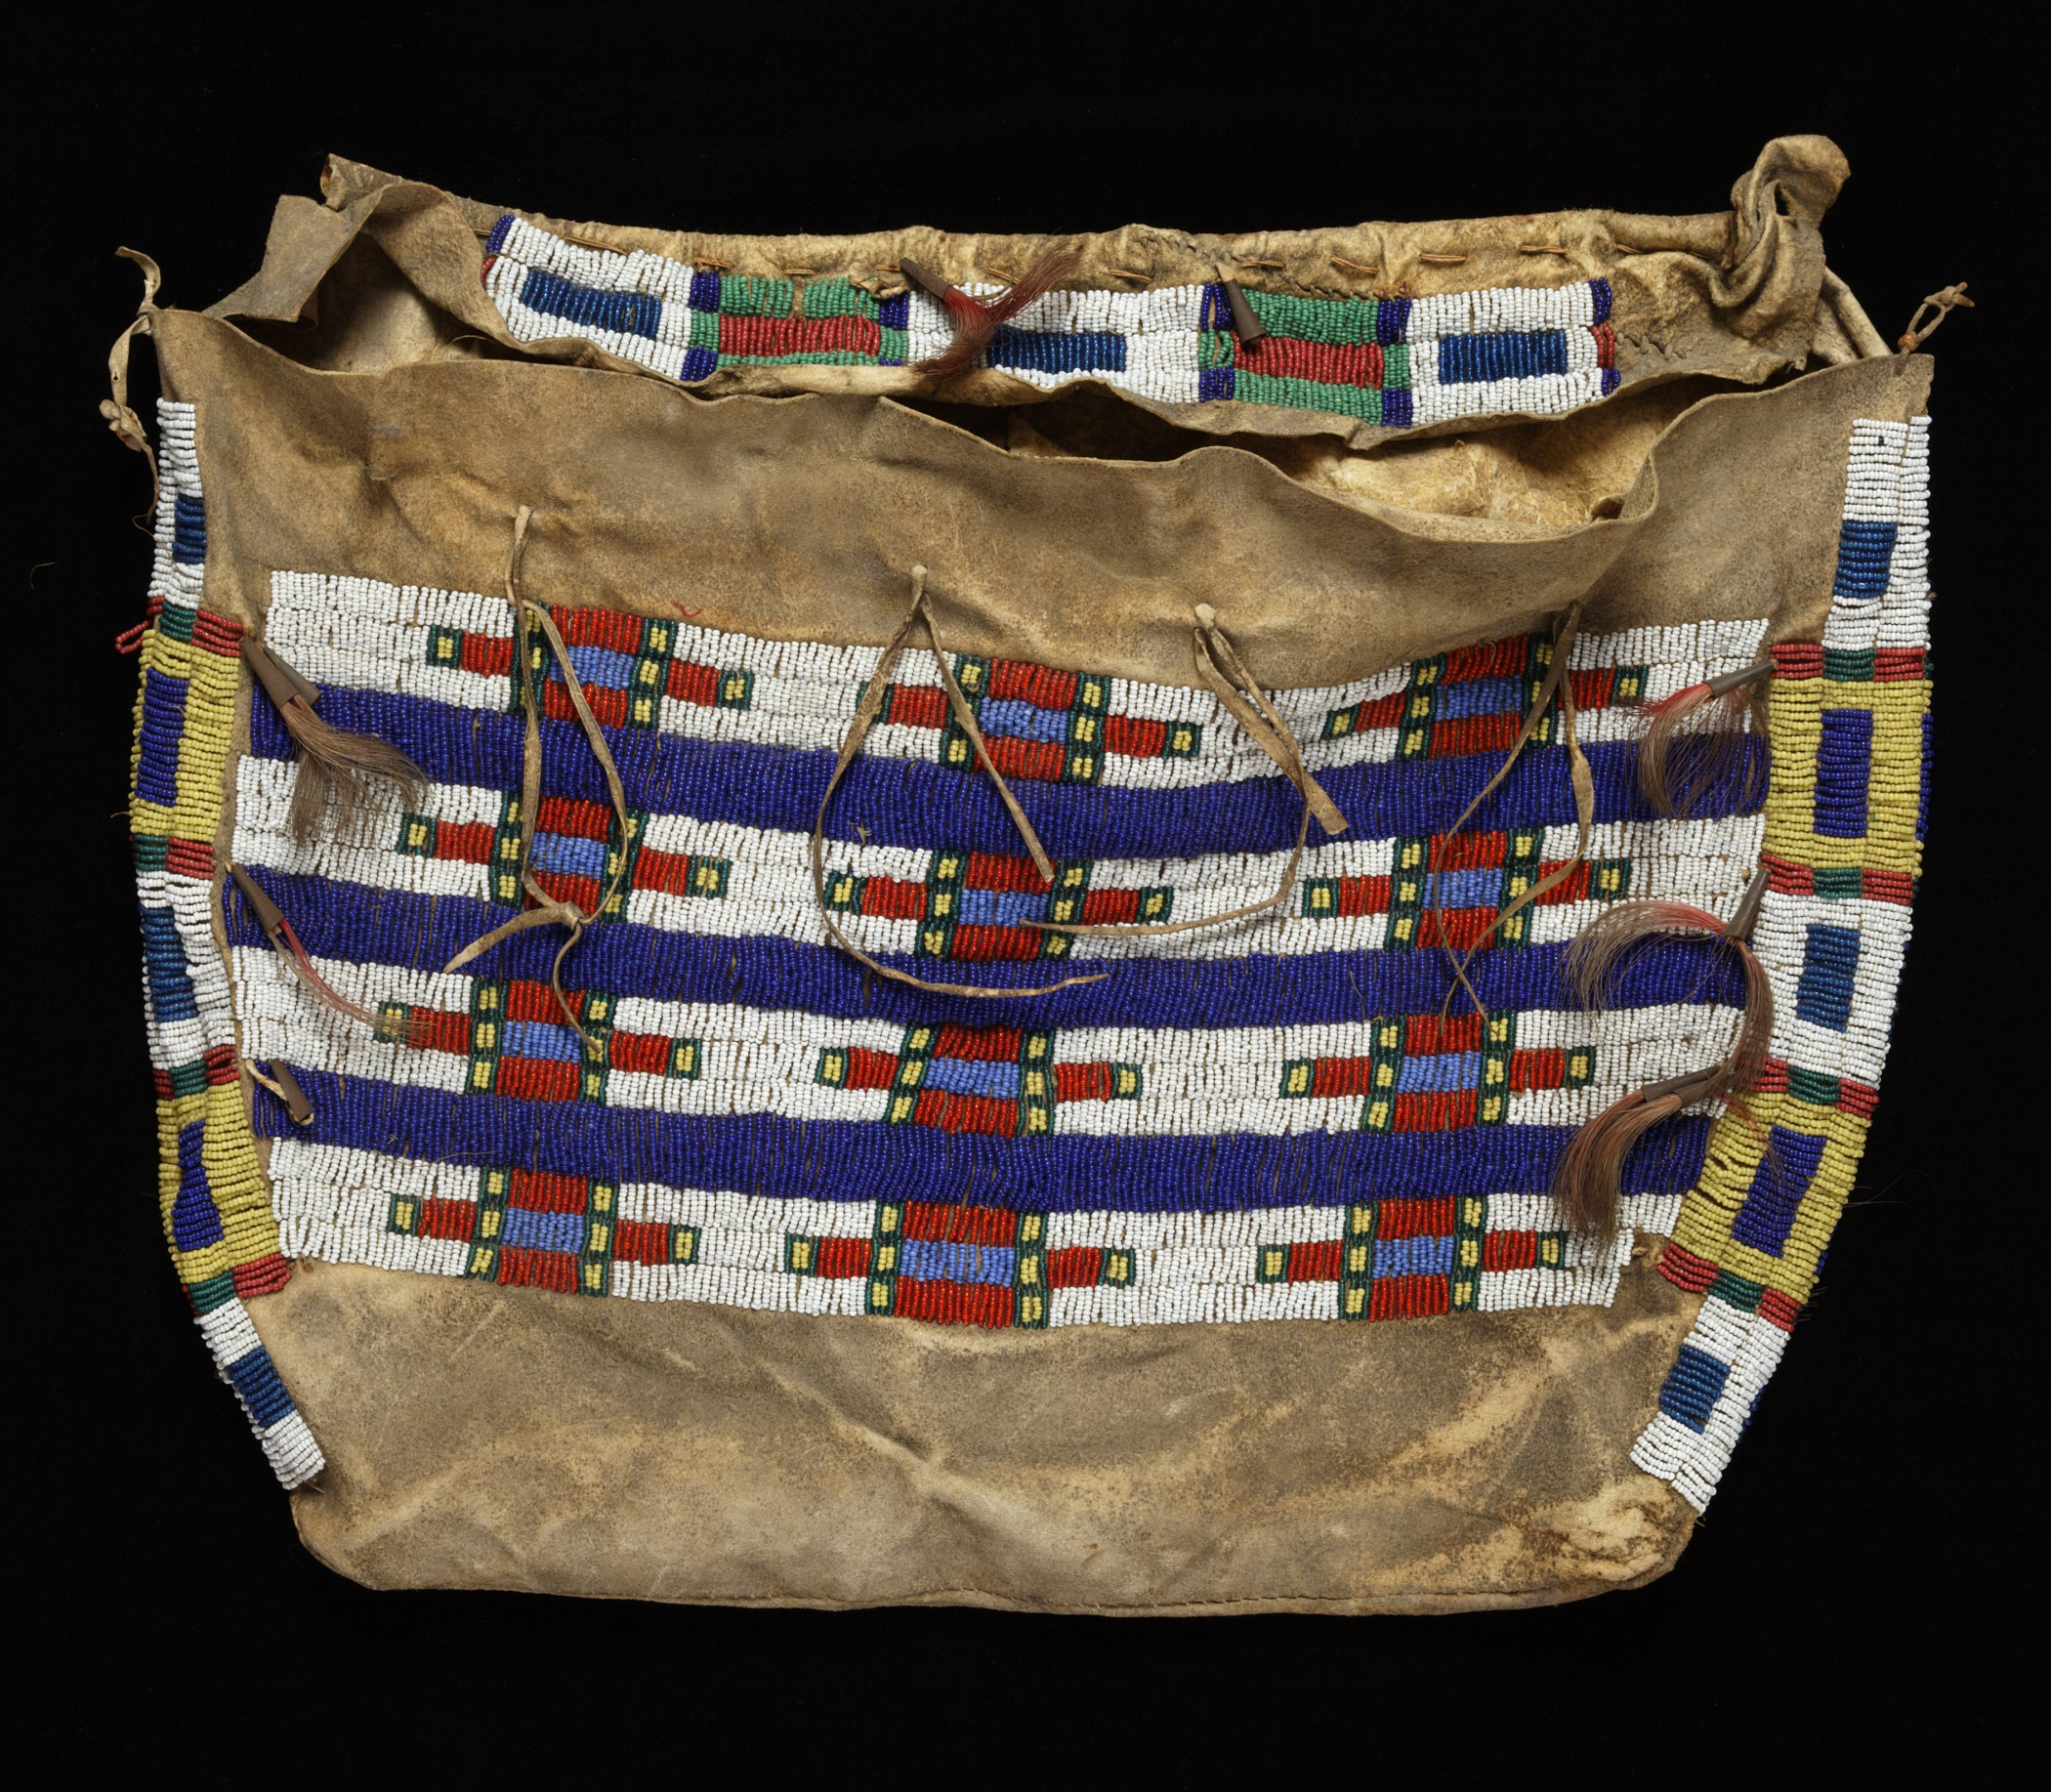 Lakota (Teton Sioux), tipi bag (possible bag), about 1890–1910. Buffalo (American bison) hide, glass beads, metal (tin) cones, sinew, cloth, string, and dyed horsehair tufts, 15 1/4 × 19 1/4 × 1 1/2 in. Hood Museum of Art, Dartmouth College: Gift of Robert G. Sands, Class of 1959, Tuck 1960; 2010.45.